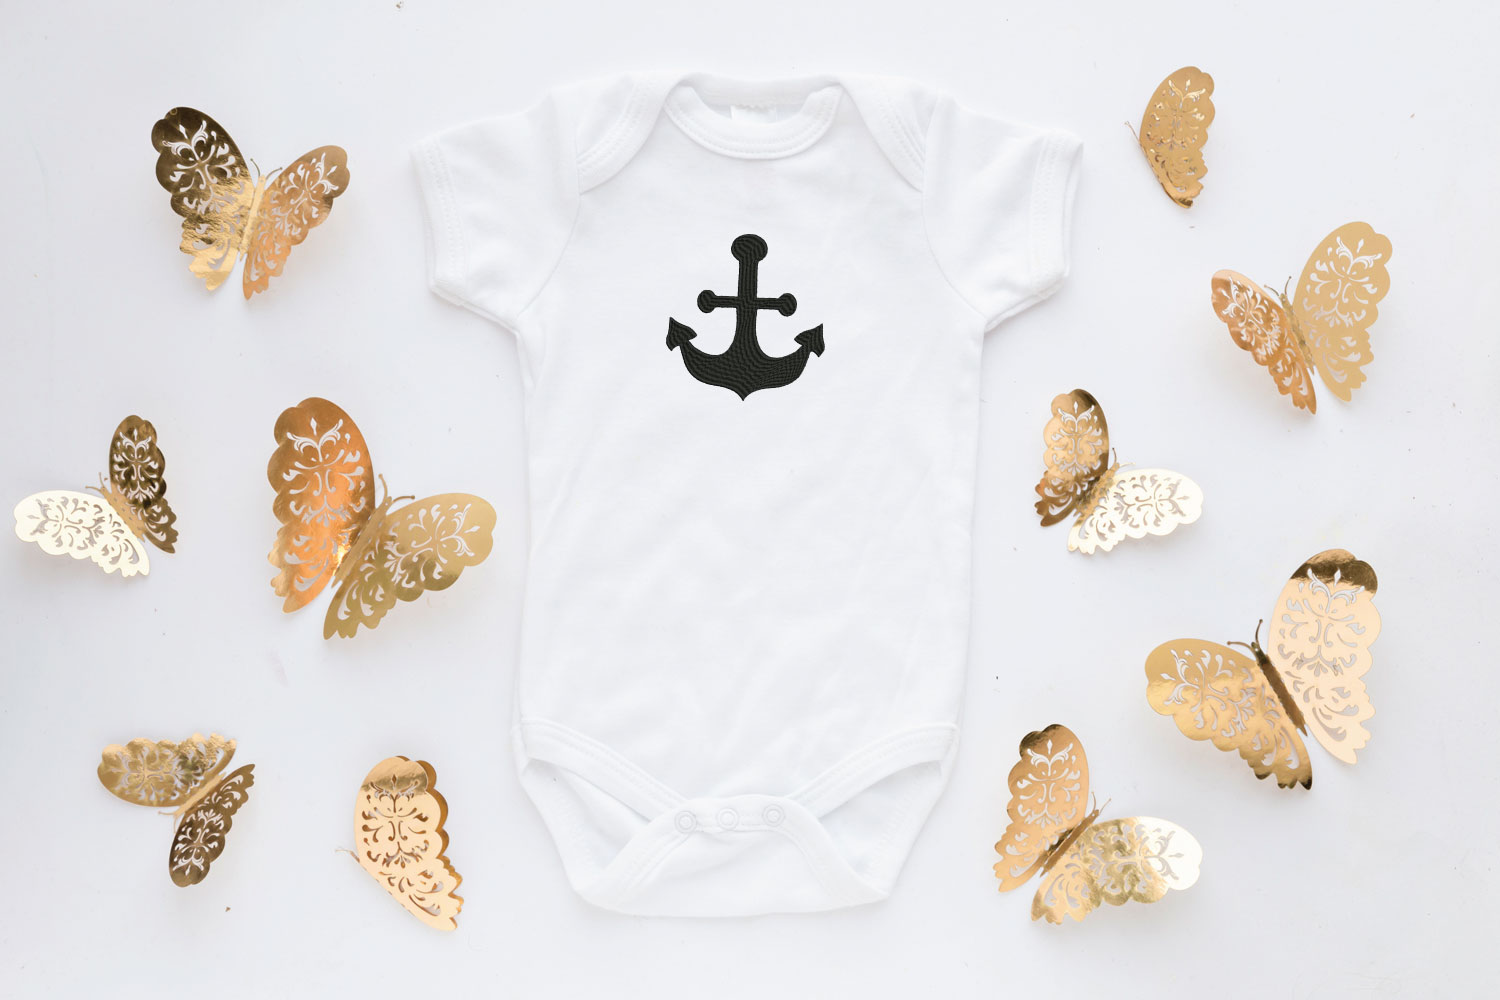 Anchor Embroidery Design, Anchor Embroidery Pattern example image 3